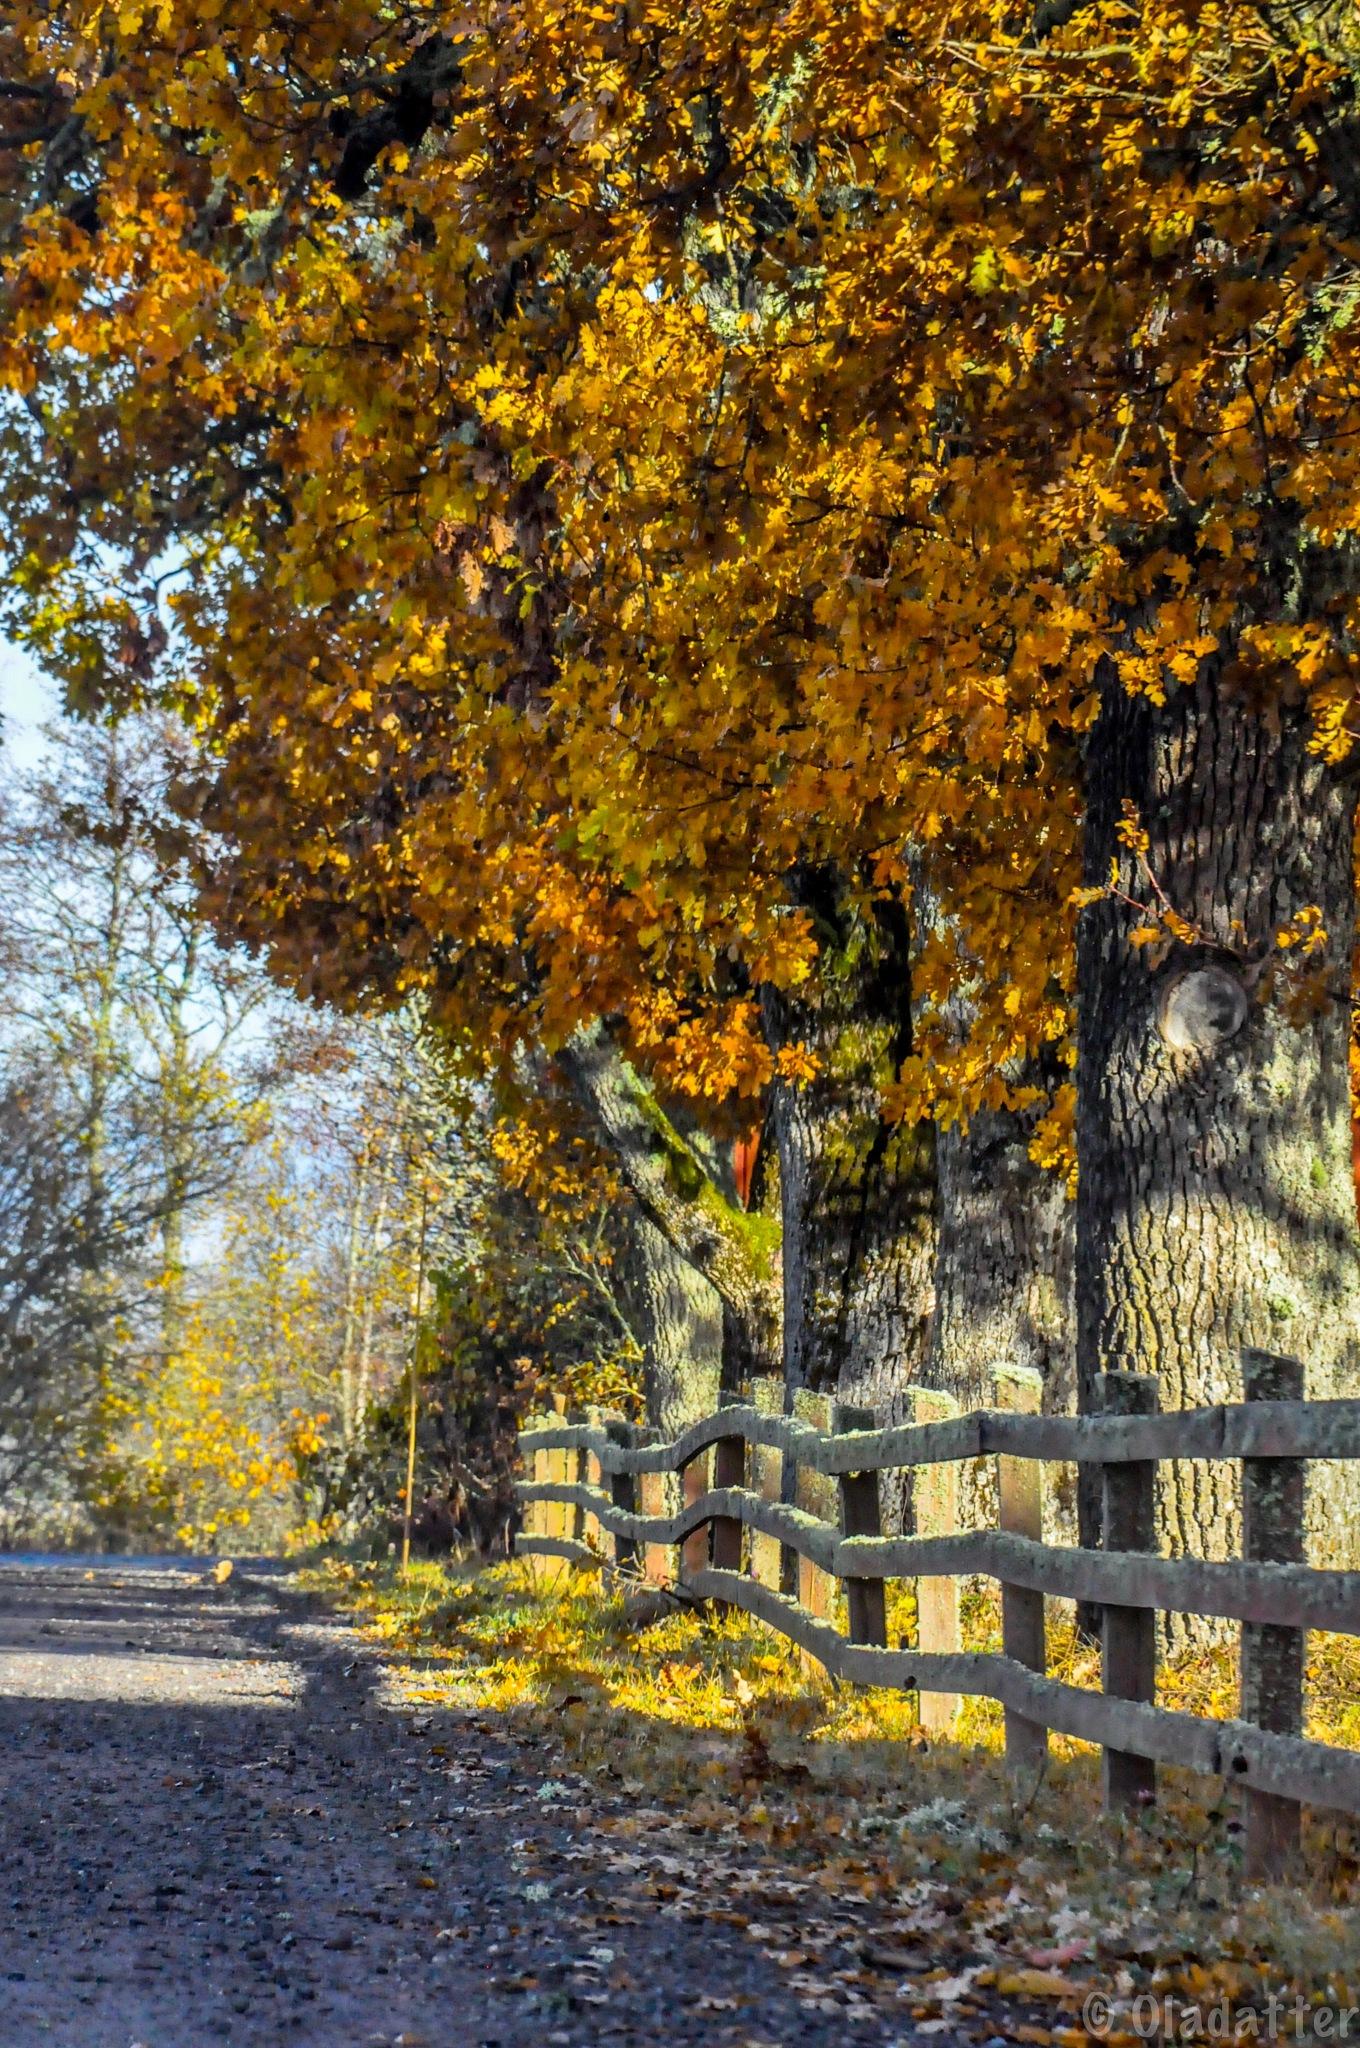 Just before the leaves fall by Kristin Oladatter